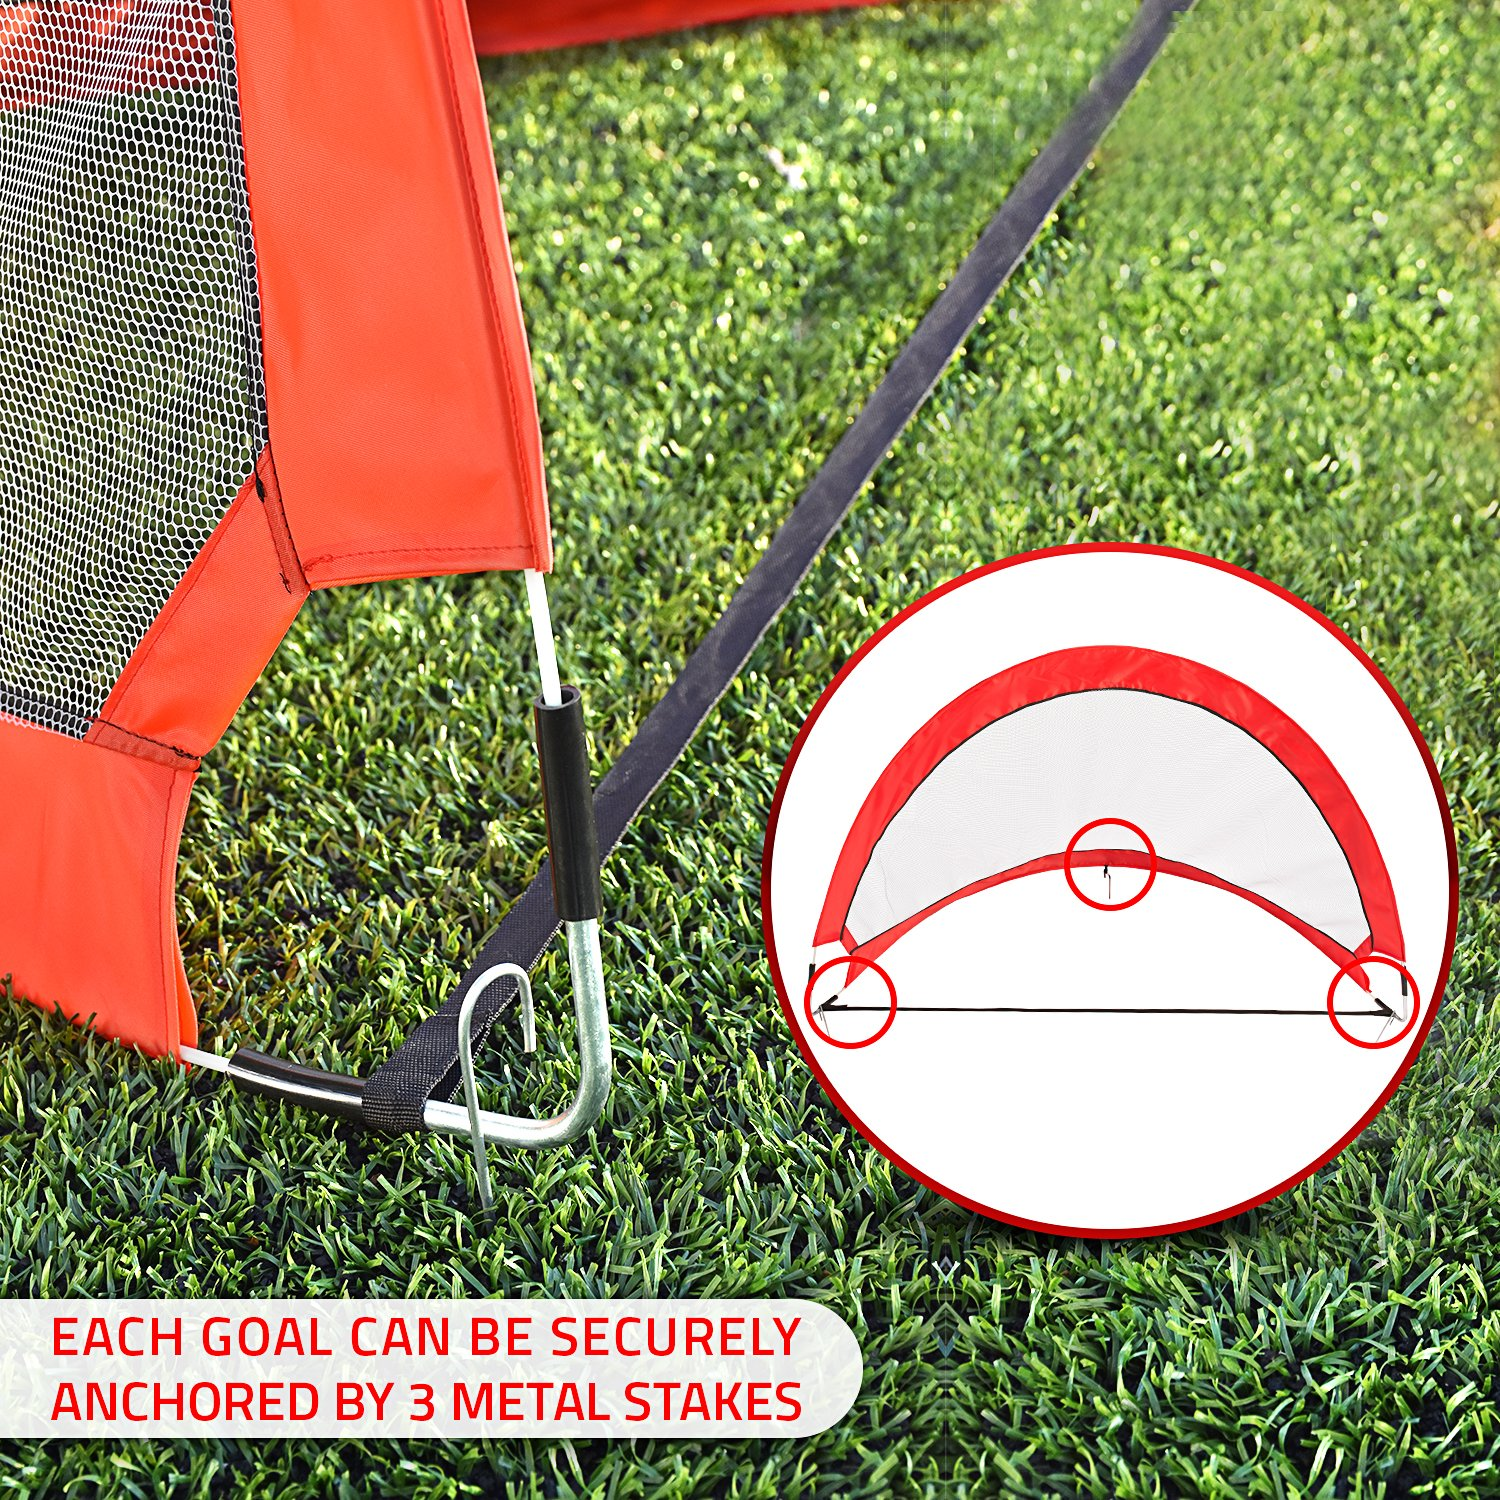 Abco Tech Portable Soccer Goal Set for Training, Practice & Game – Pop-up Soccer Net – 2 Soccer Goals, 6 Disc Cones & 8 Spikes – Carry Bag – Easy to Assemble & Store – Be it Backyard or Public Fields by Abco Tech (Image #7)